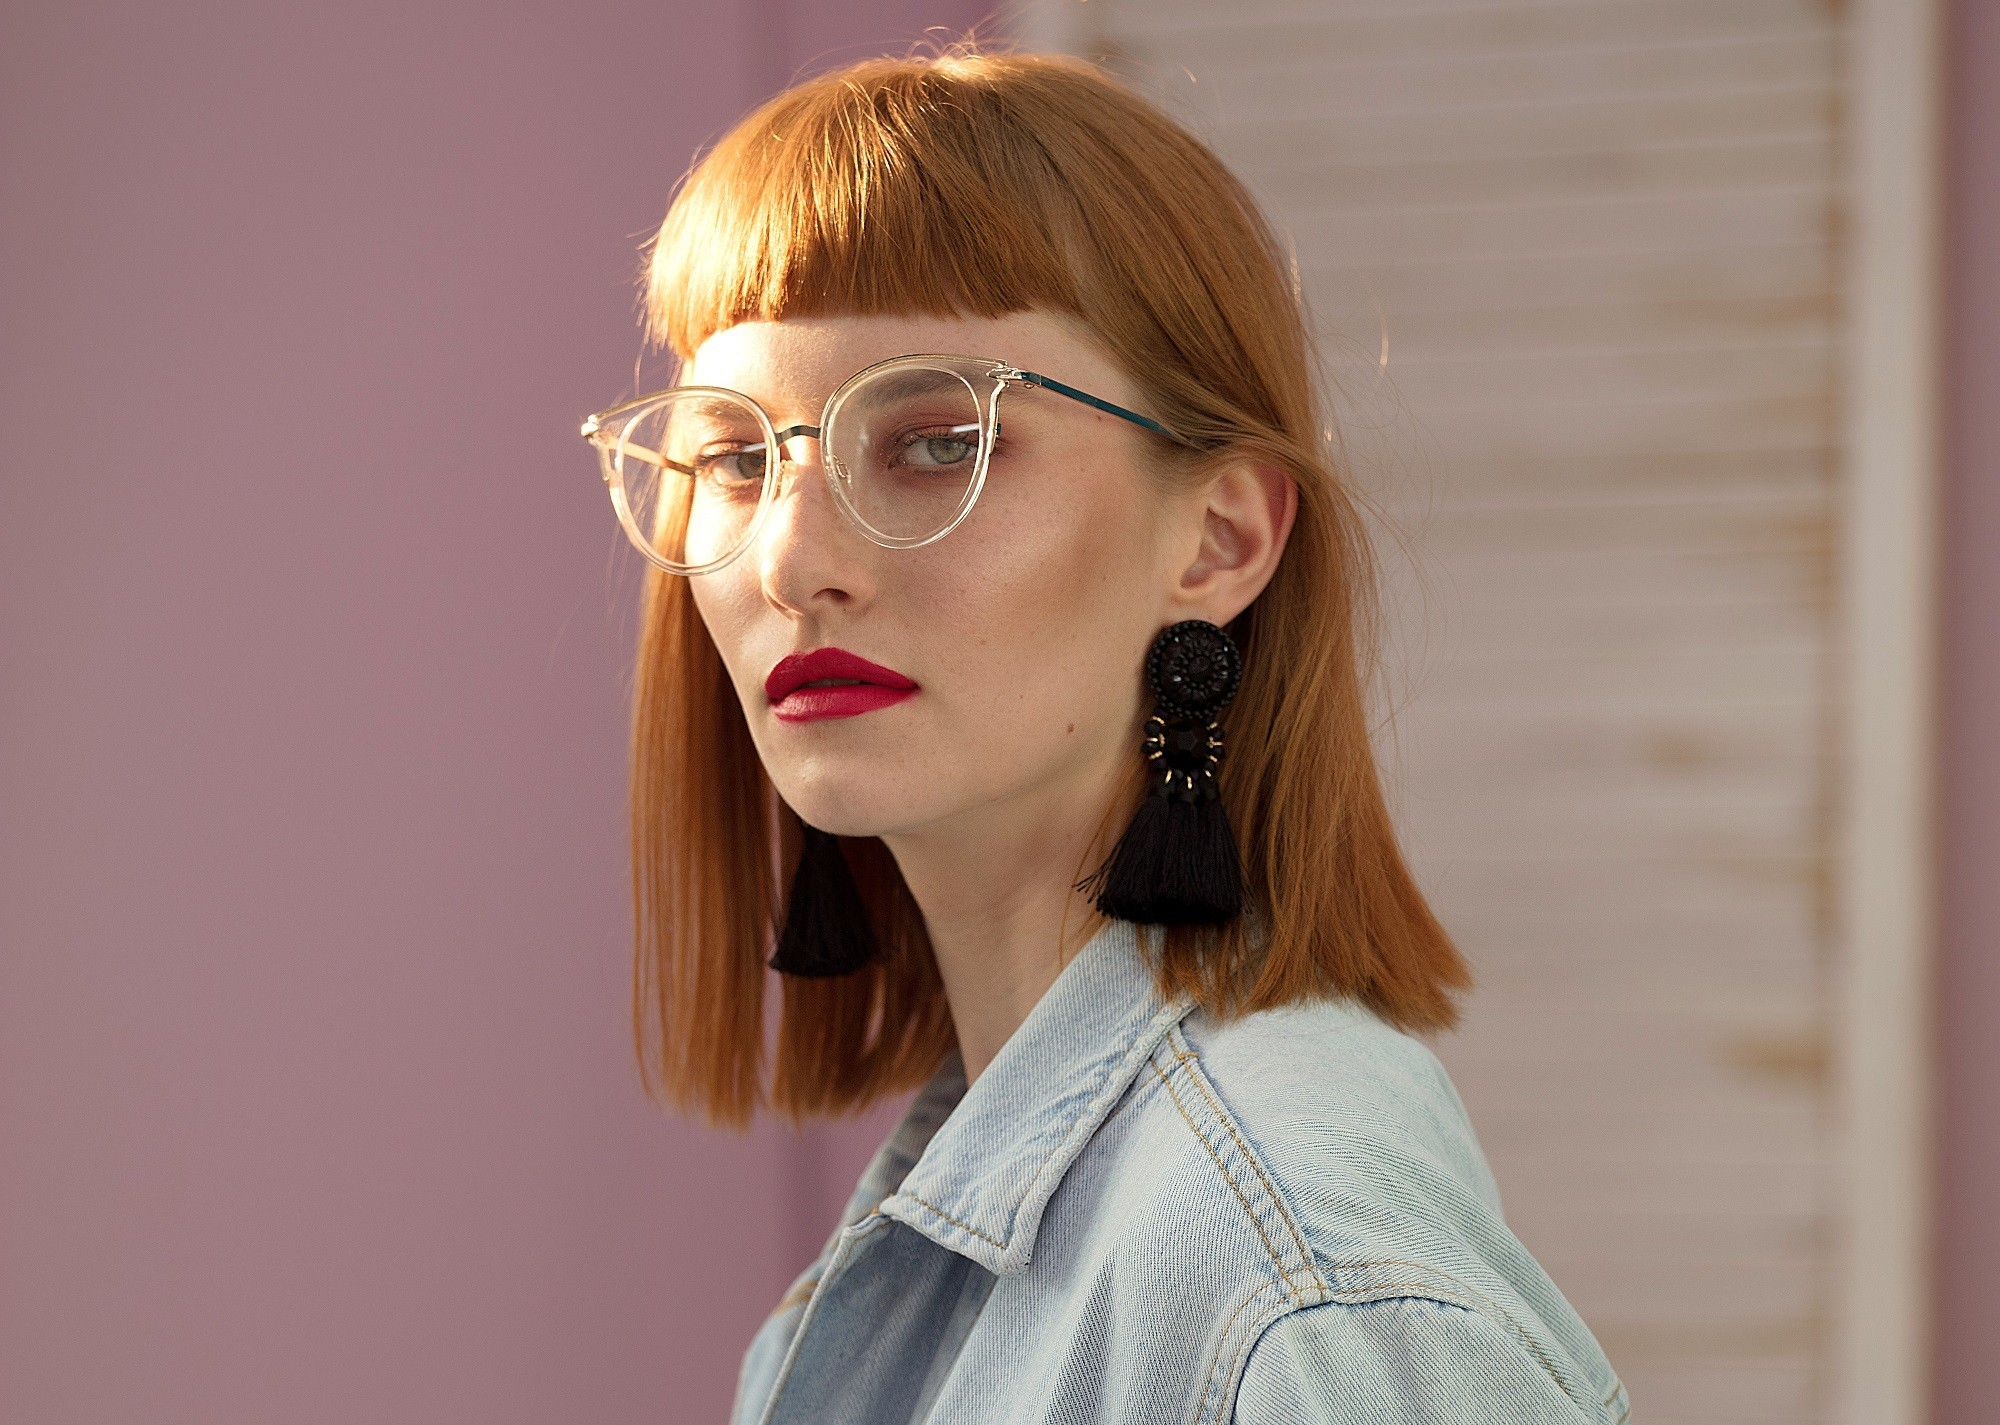 Woman with long bob and blunt bangs with glasses